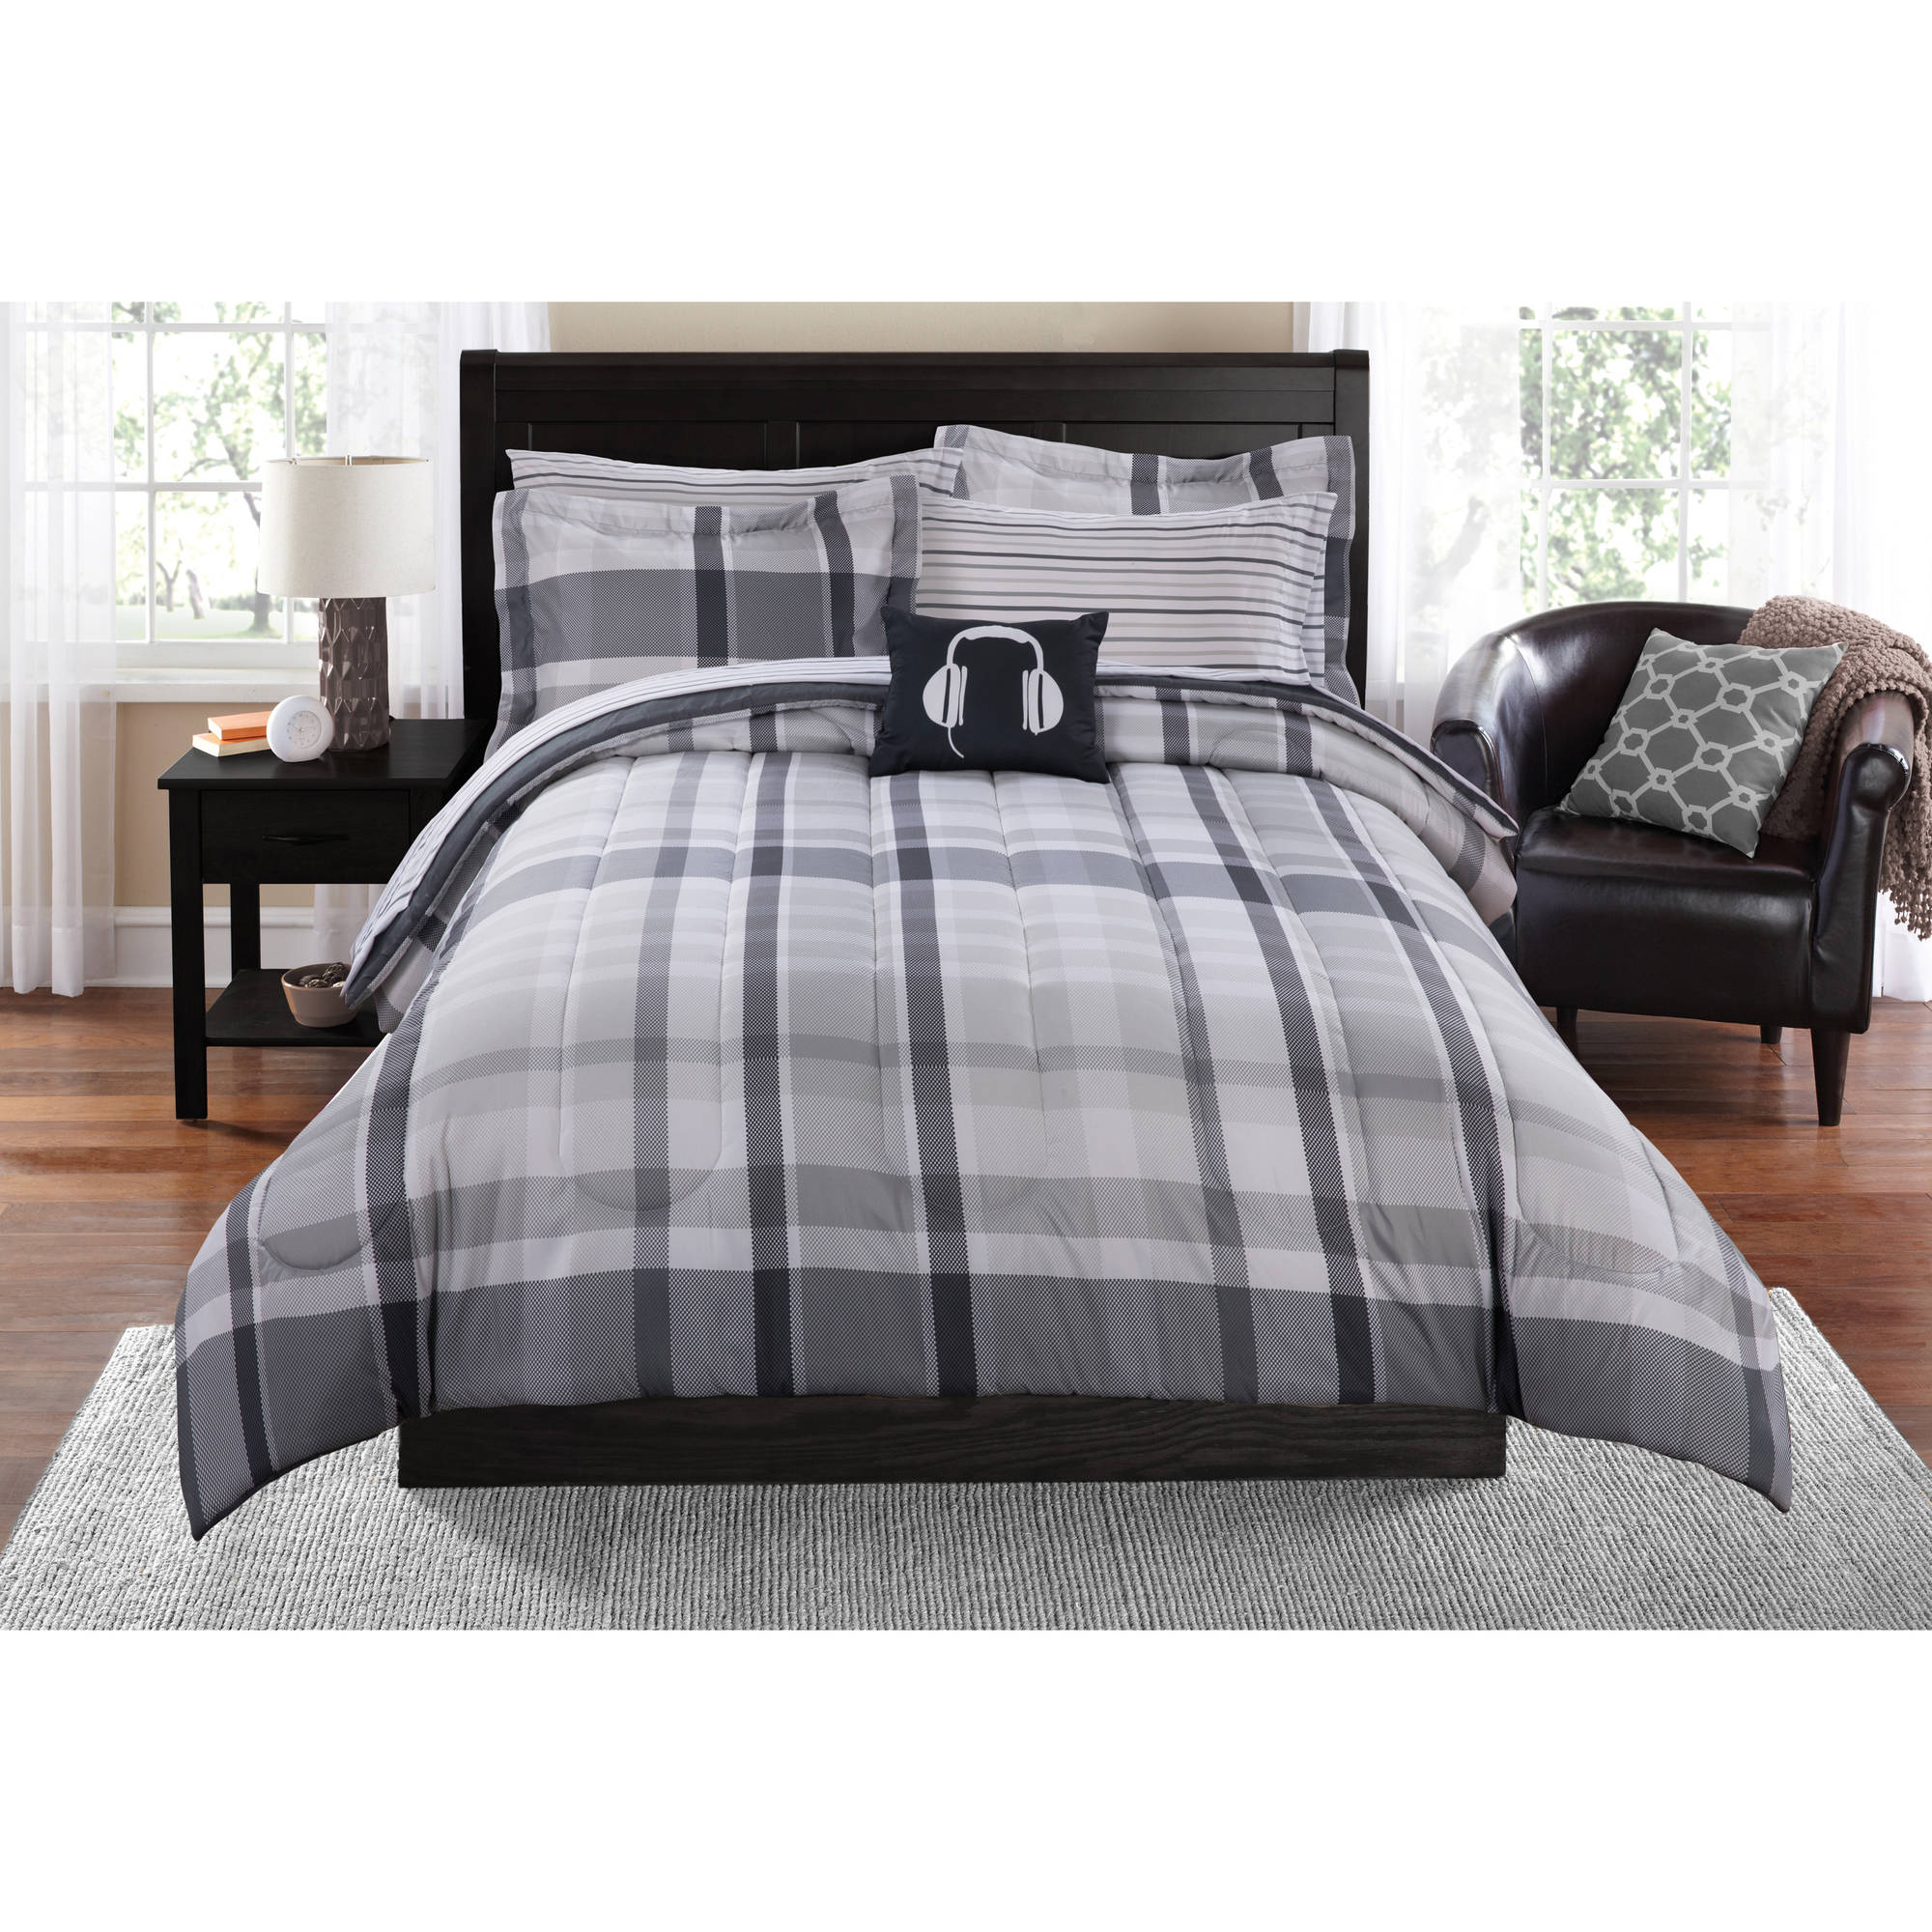 Mainstays Plaid Bed in a Bag Complete Bedding Set